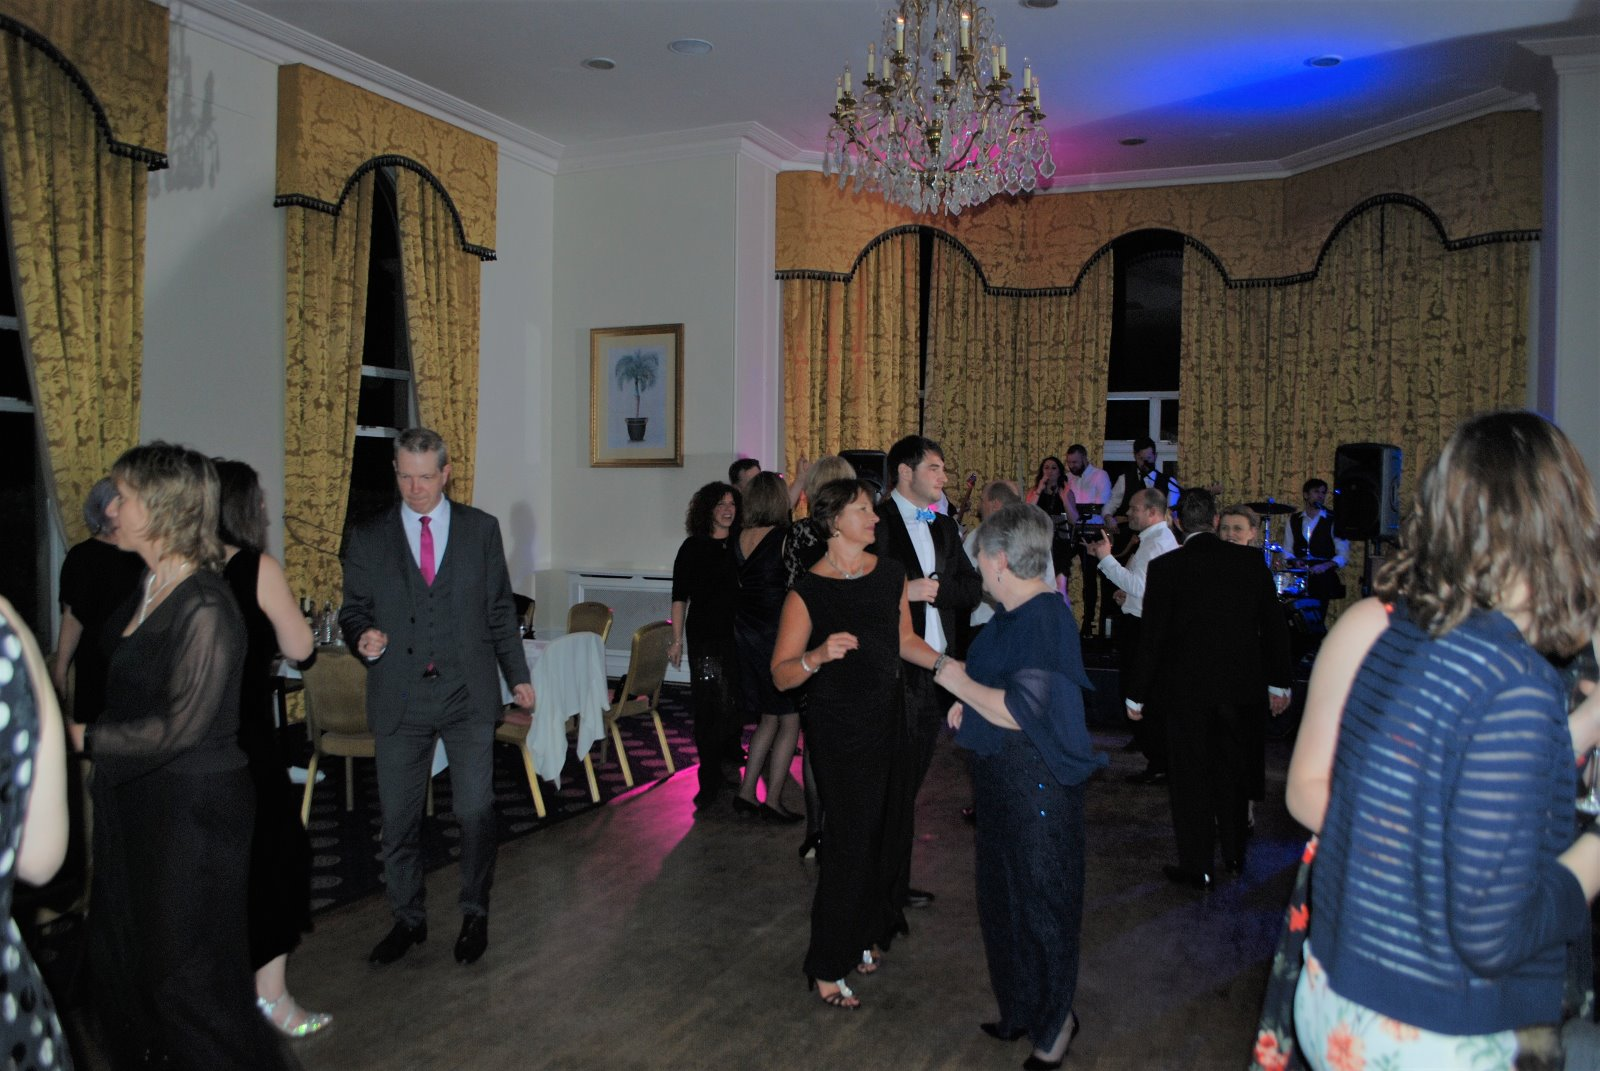 Ball Photo 3 – Group Dancing